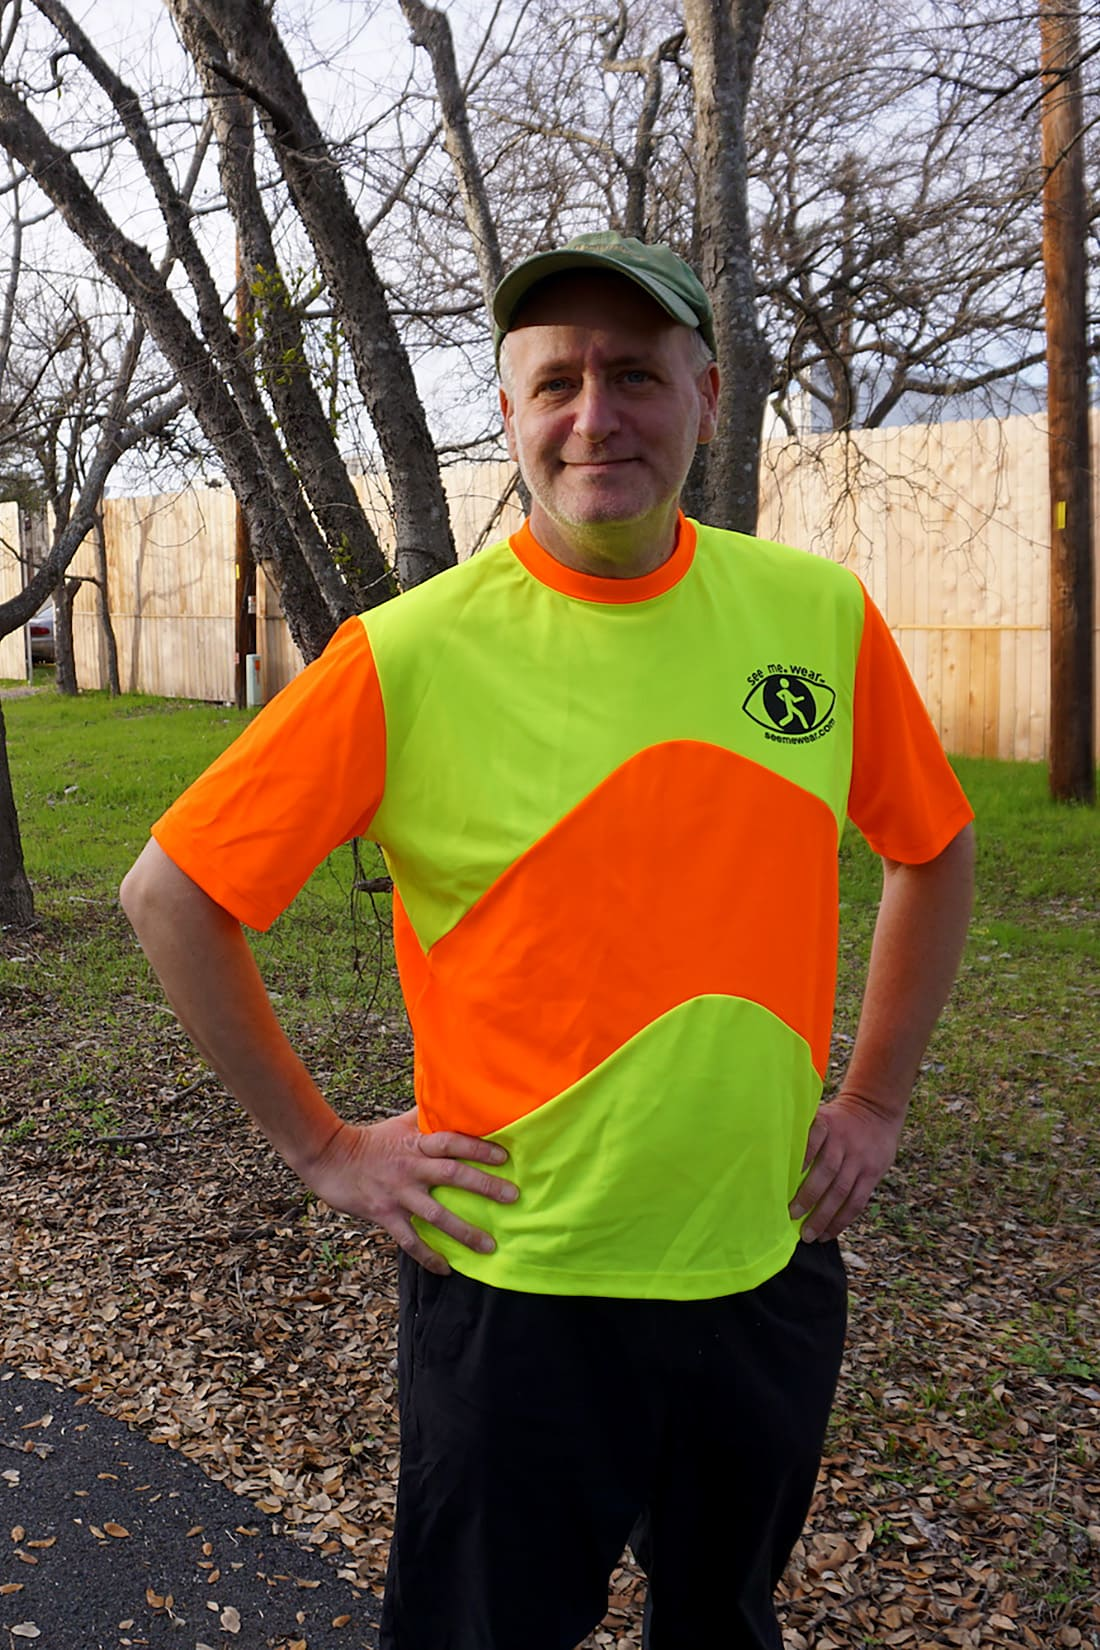 Running Clothing by See Me Wear